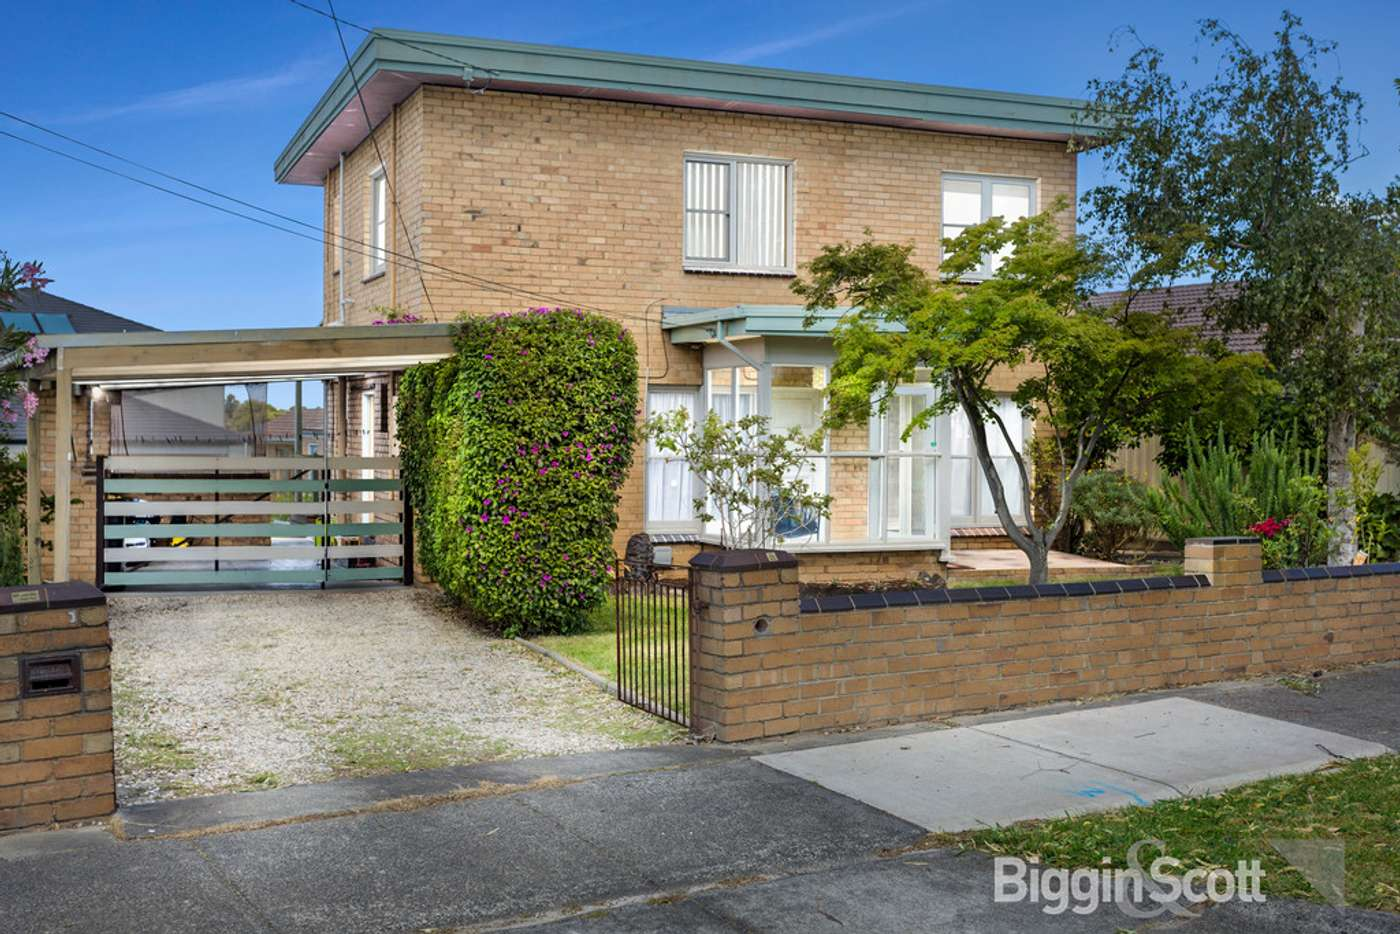 Main view of Homely house listing, 14 Outlook Road, Mount Waverley VIC 3149